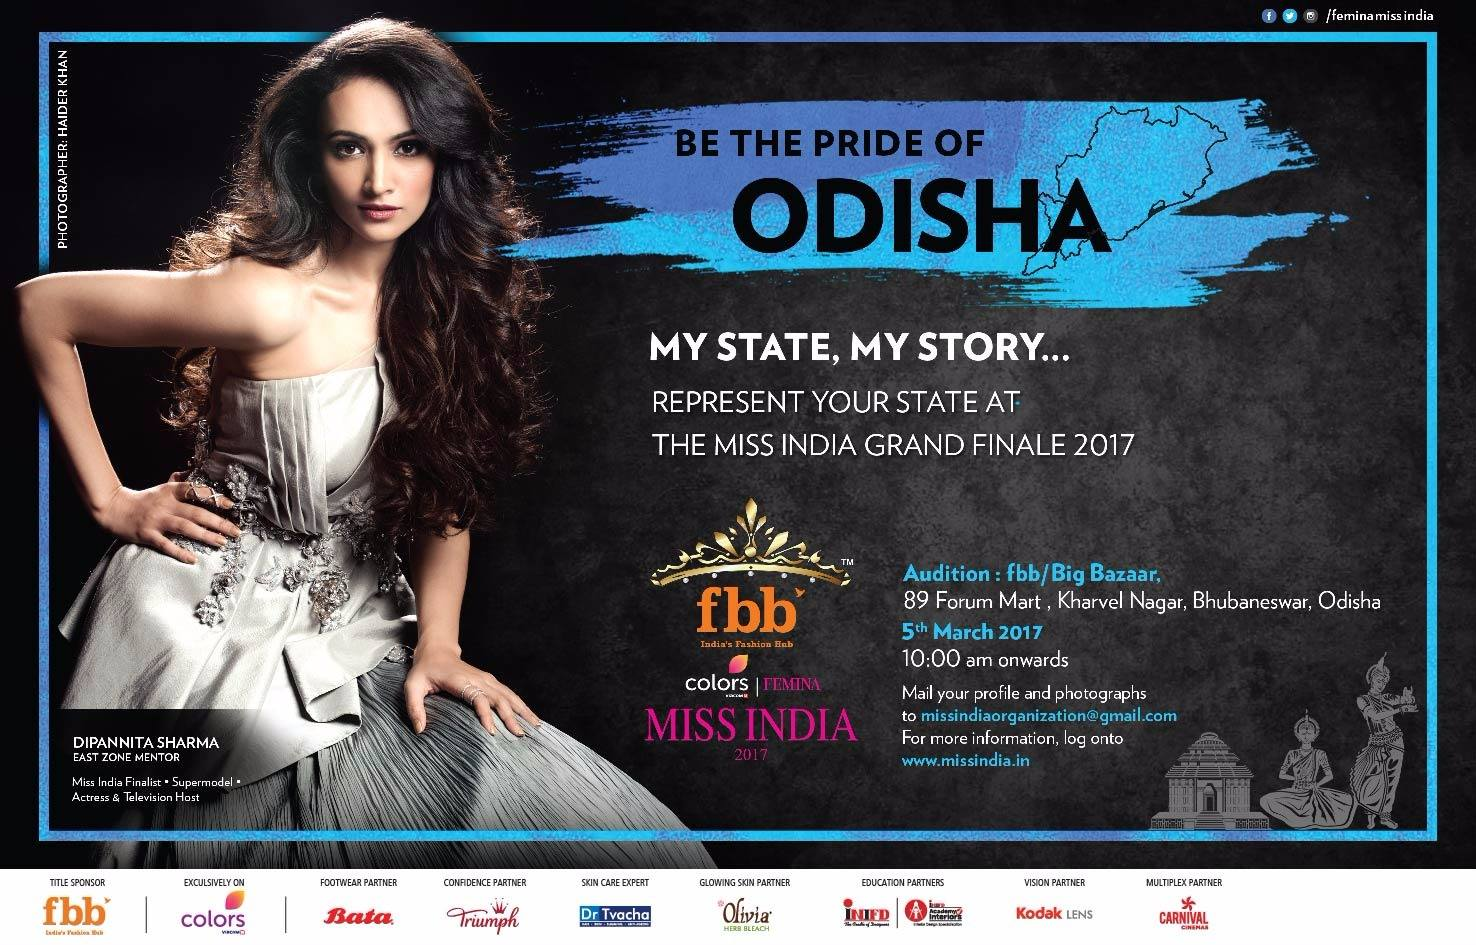 femina miss india audition bhubaneswar buzz 2017